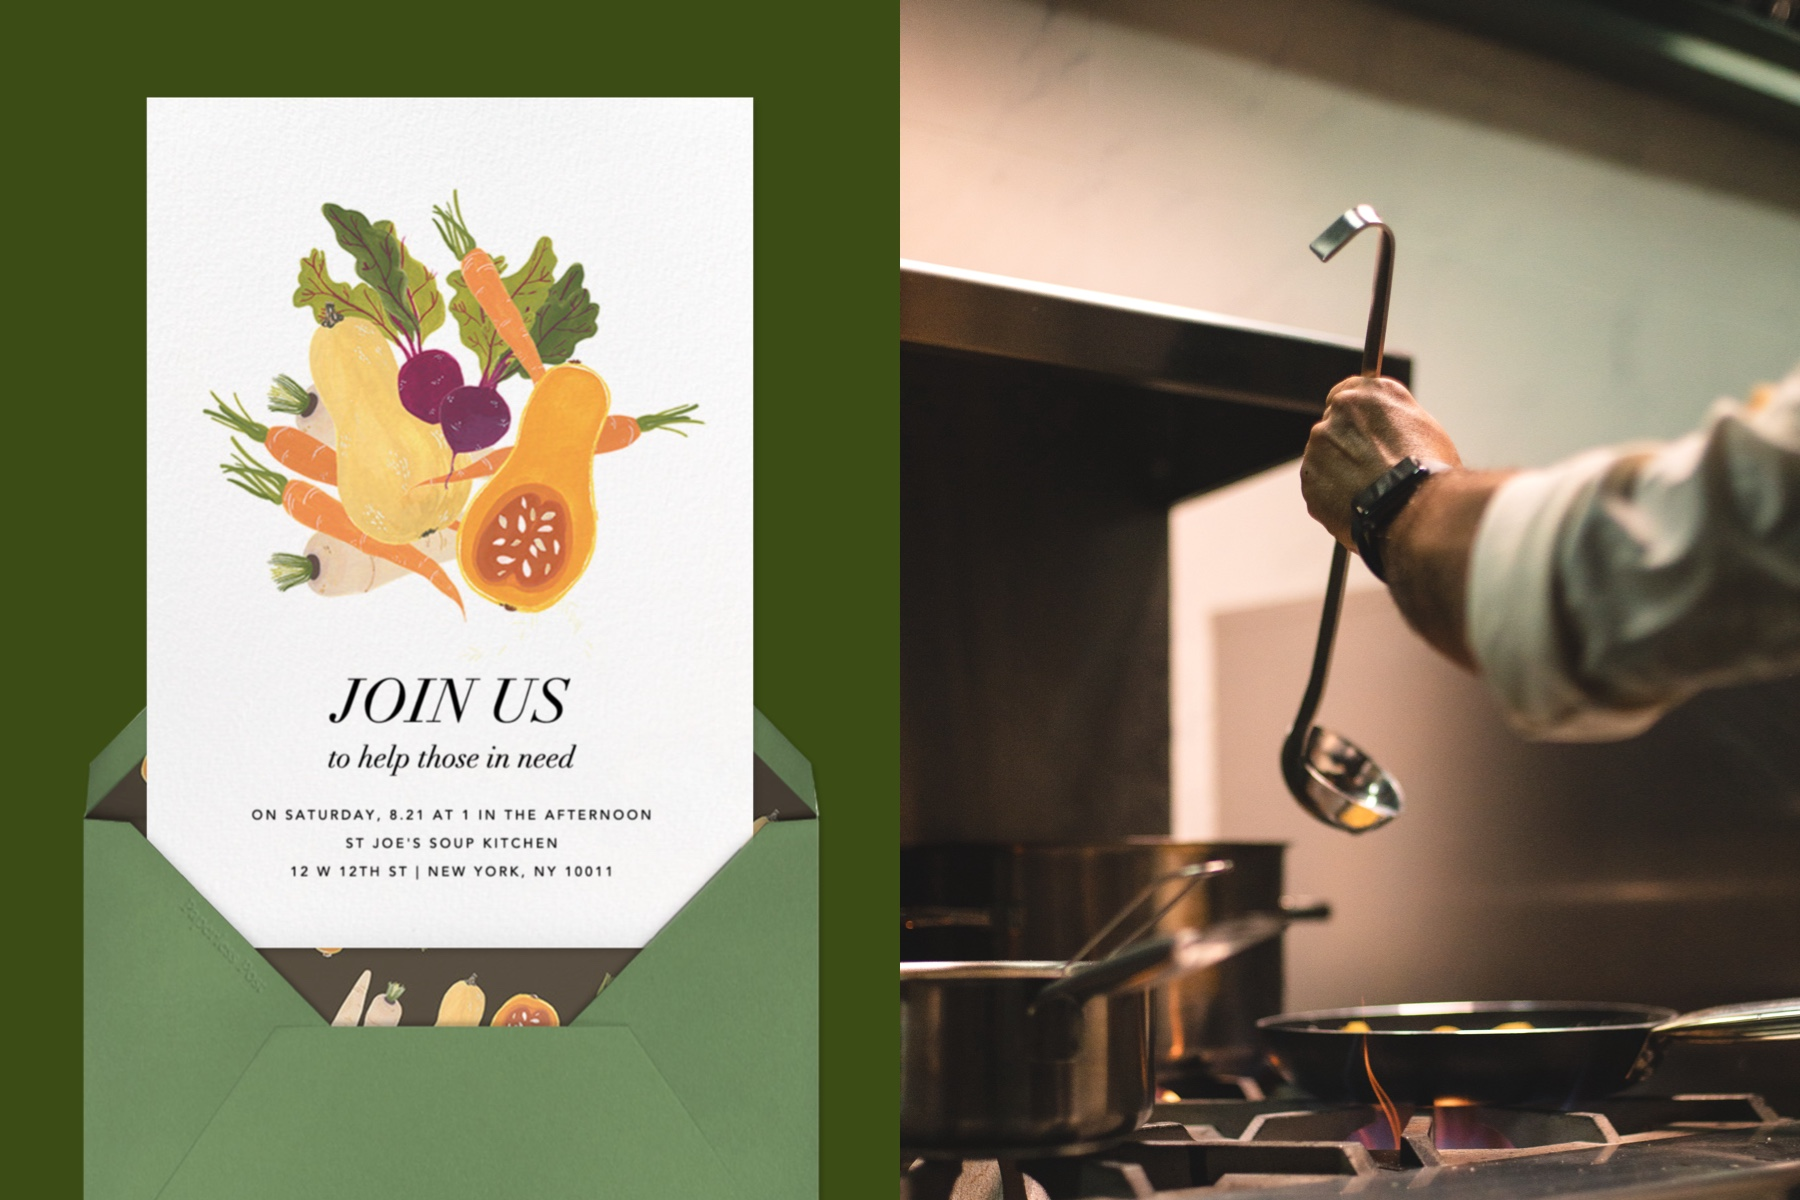 """Left: """"Market Table"""" invitation by Paperless Post featuring an illustration of vegetables like carrots, beets, and squash on a green background. 